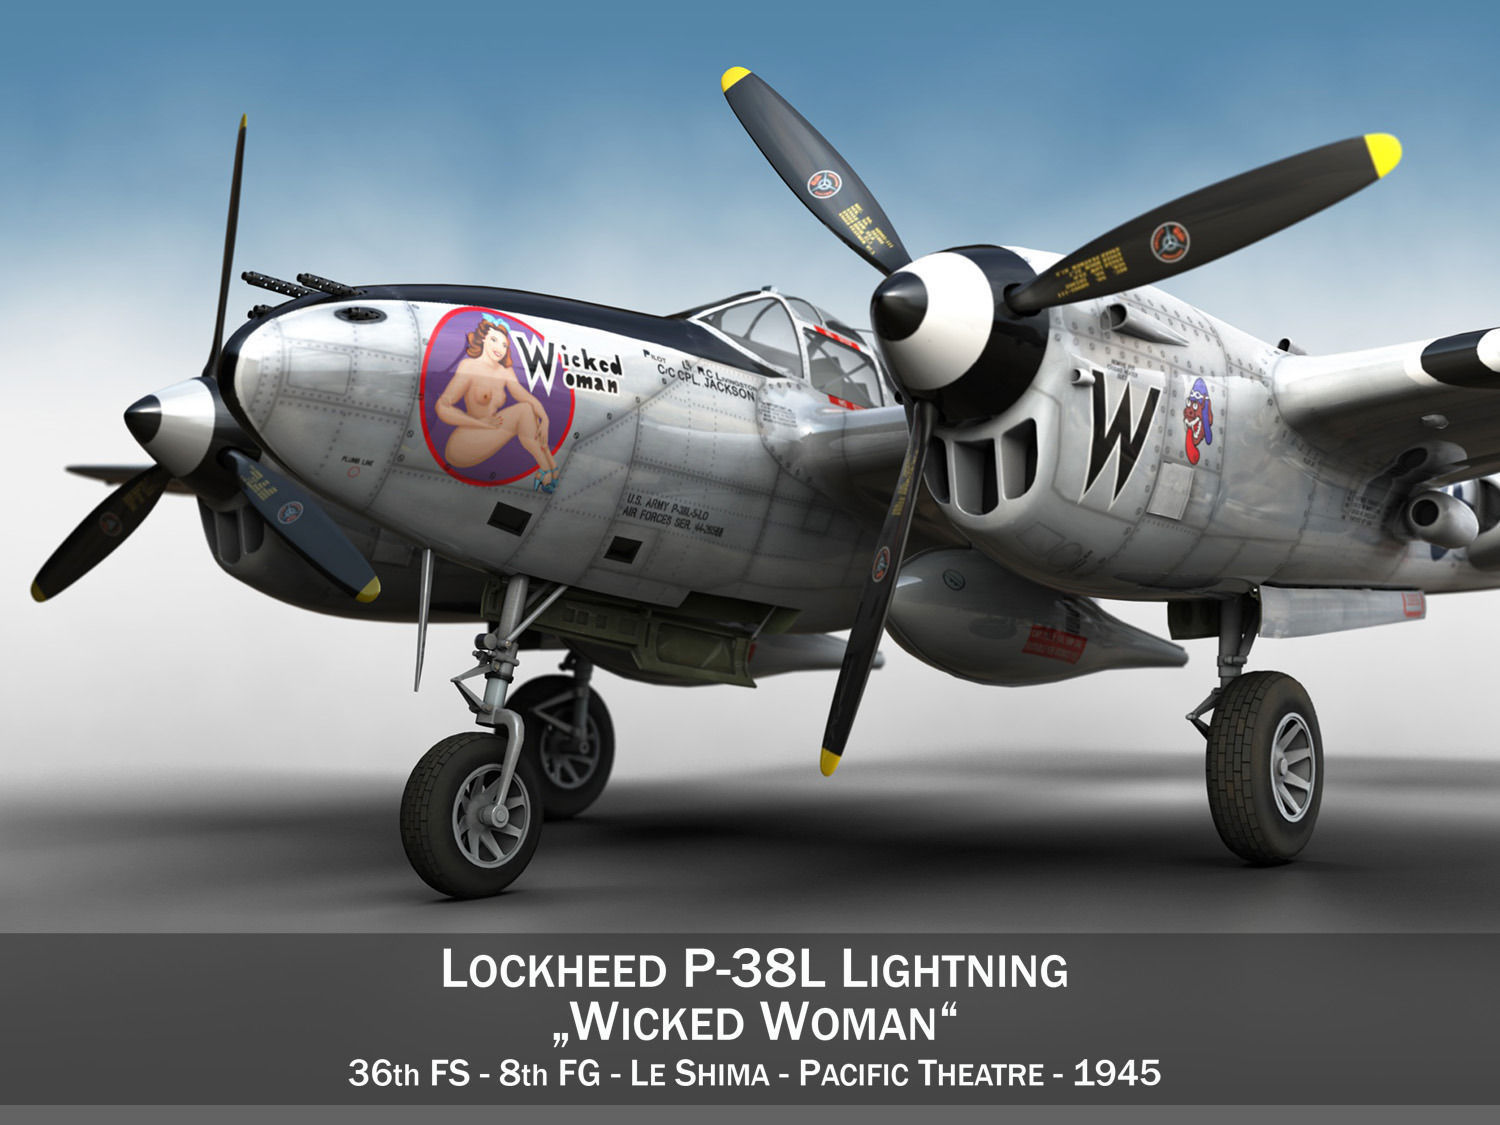 lockheed-p-38-lightning-wicked-woman-3d-